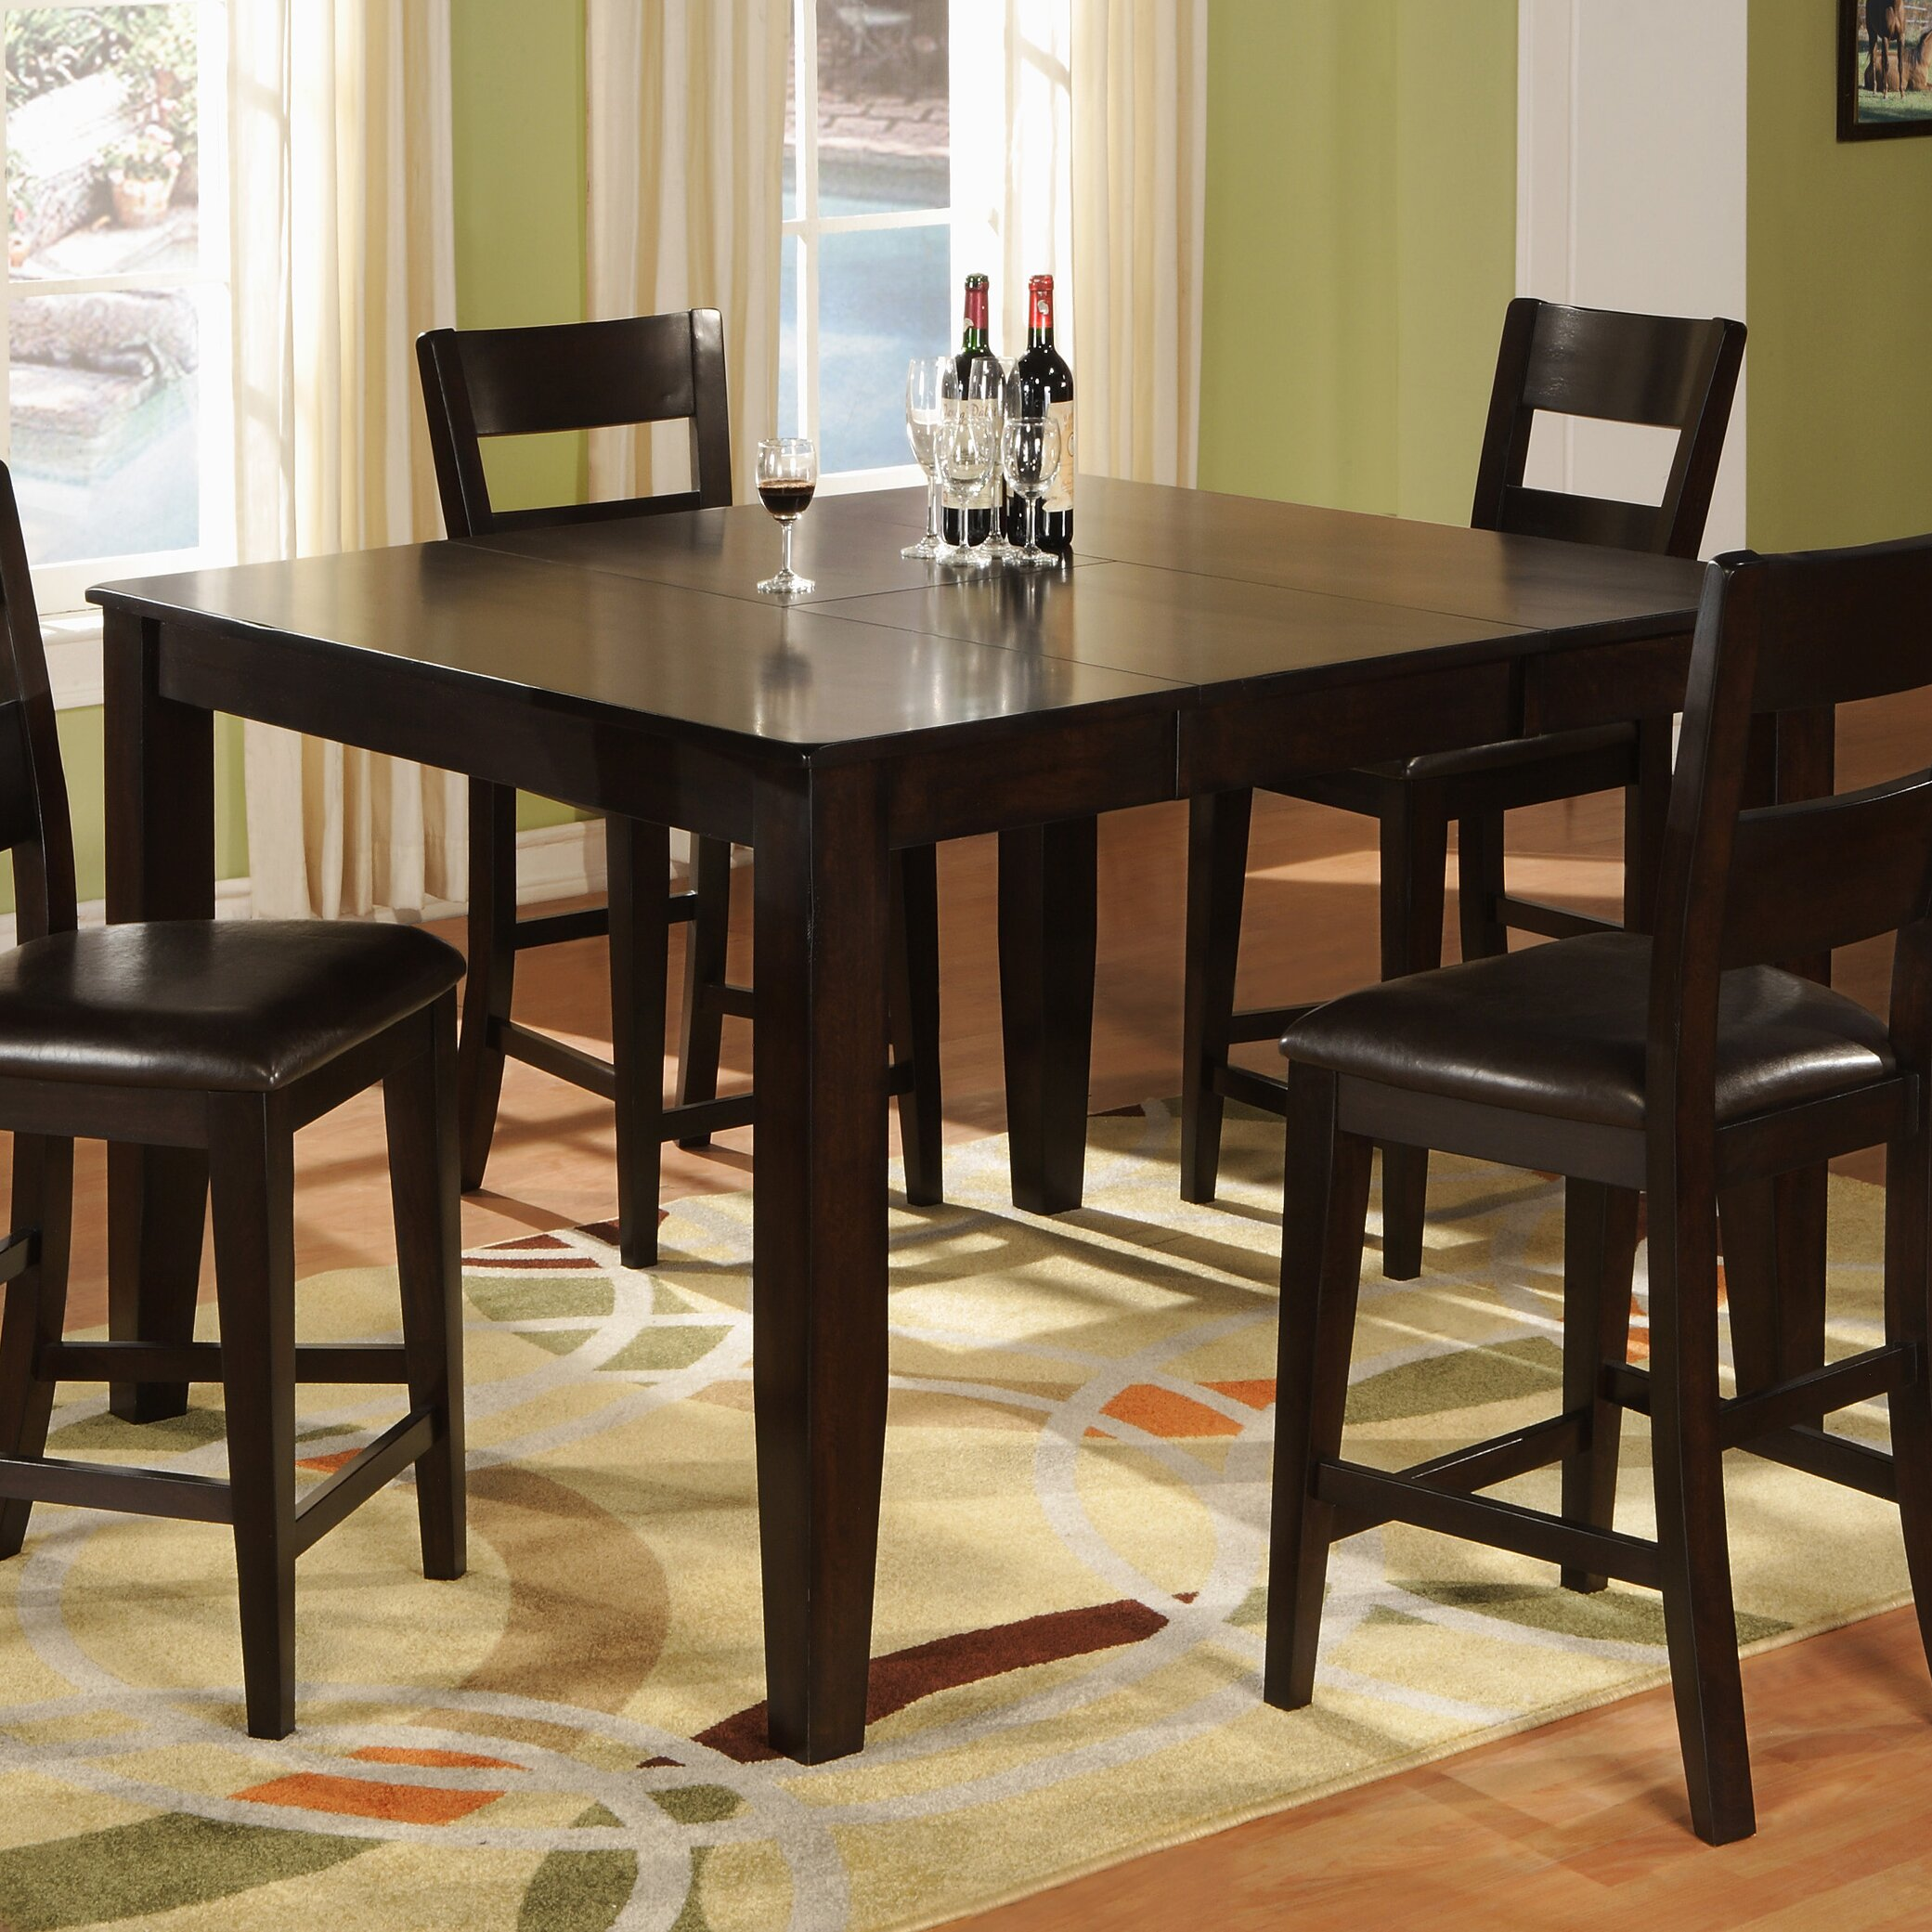 Wildon Home ® Counter Height Dining Table & Reviews | Wayfair